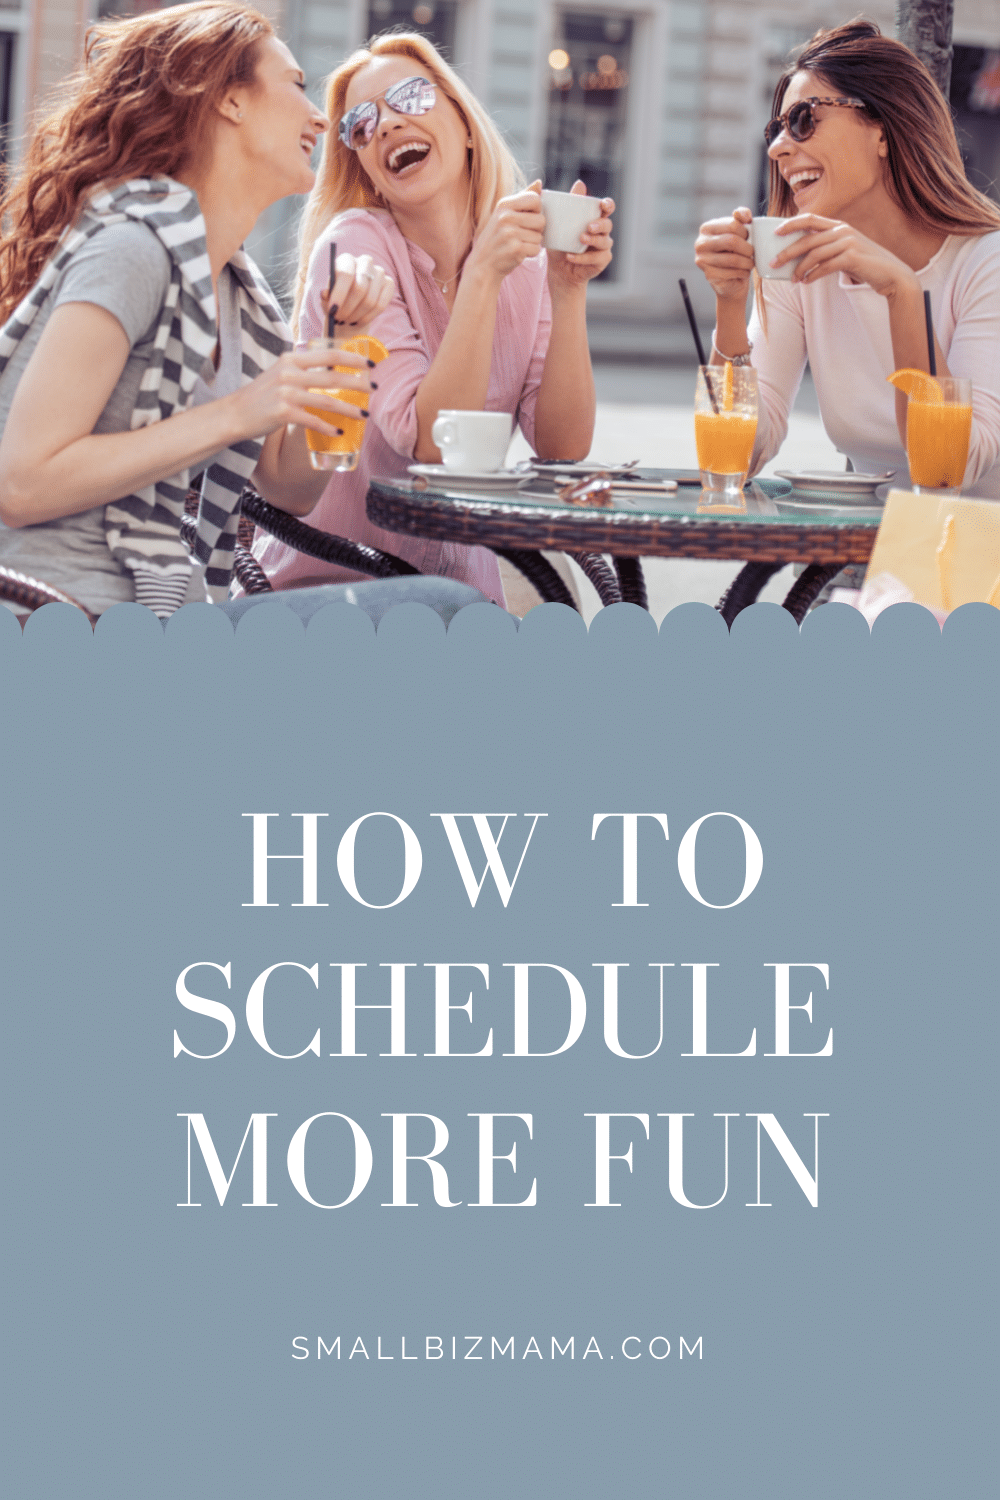 How to schedule more fun